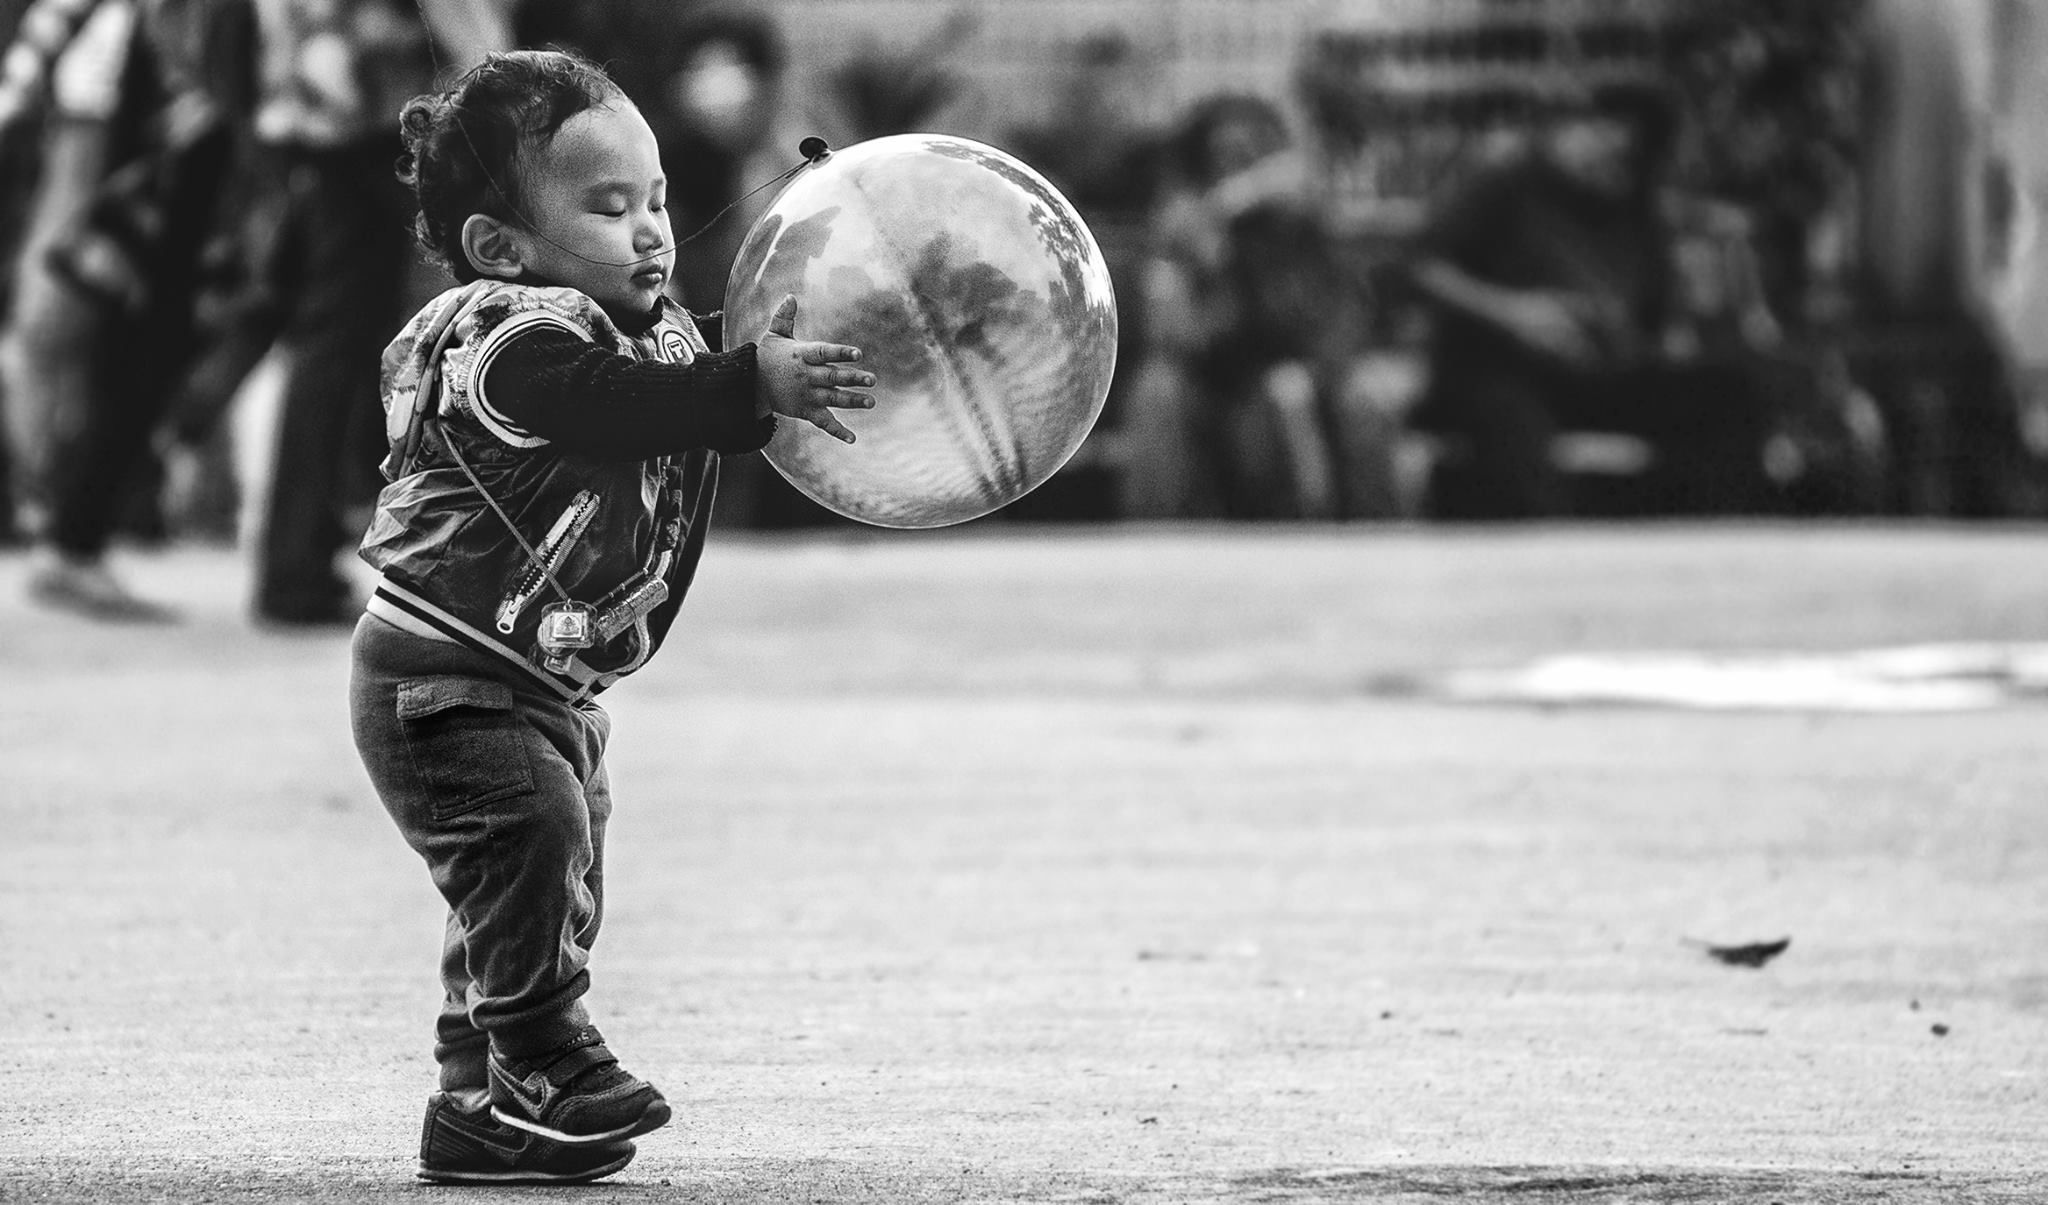 Heal The World by Anirban Chaklader Frames